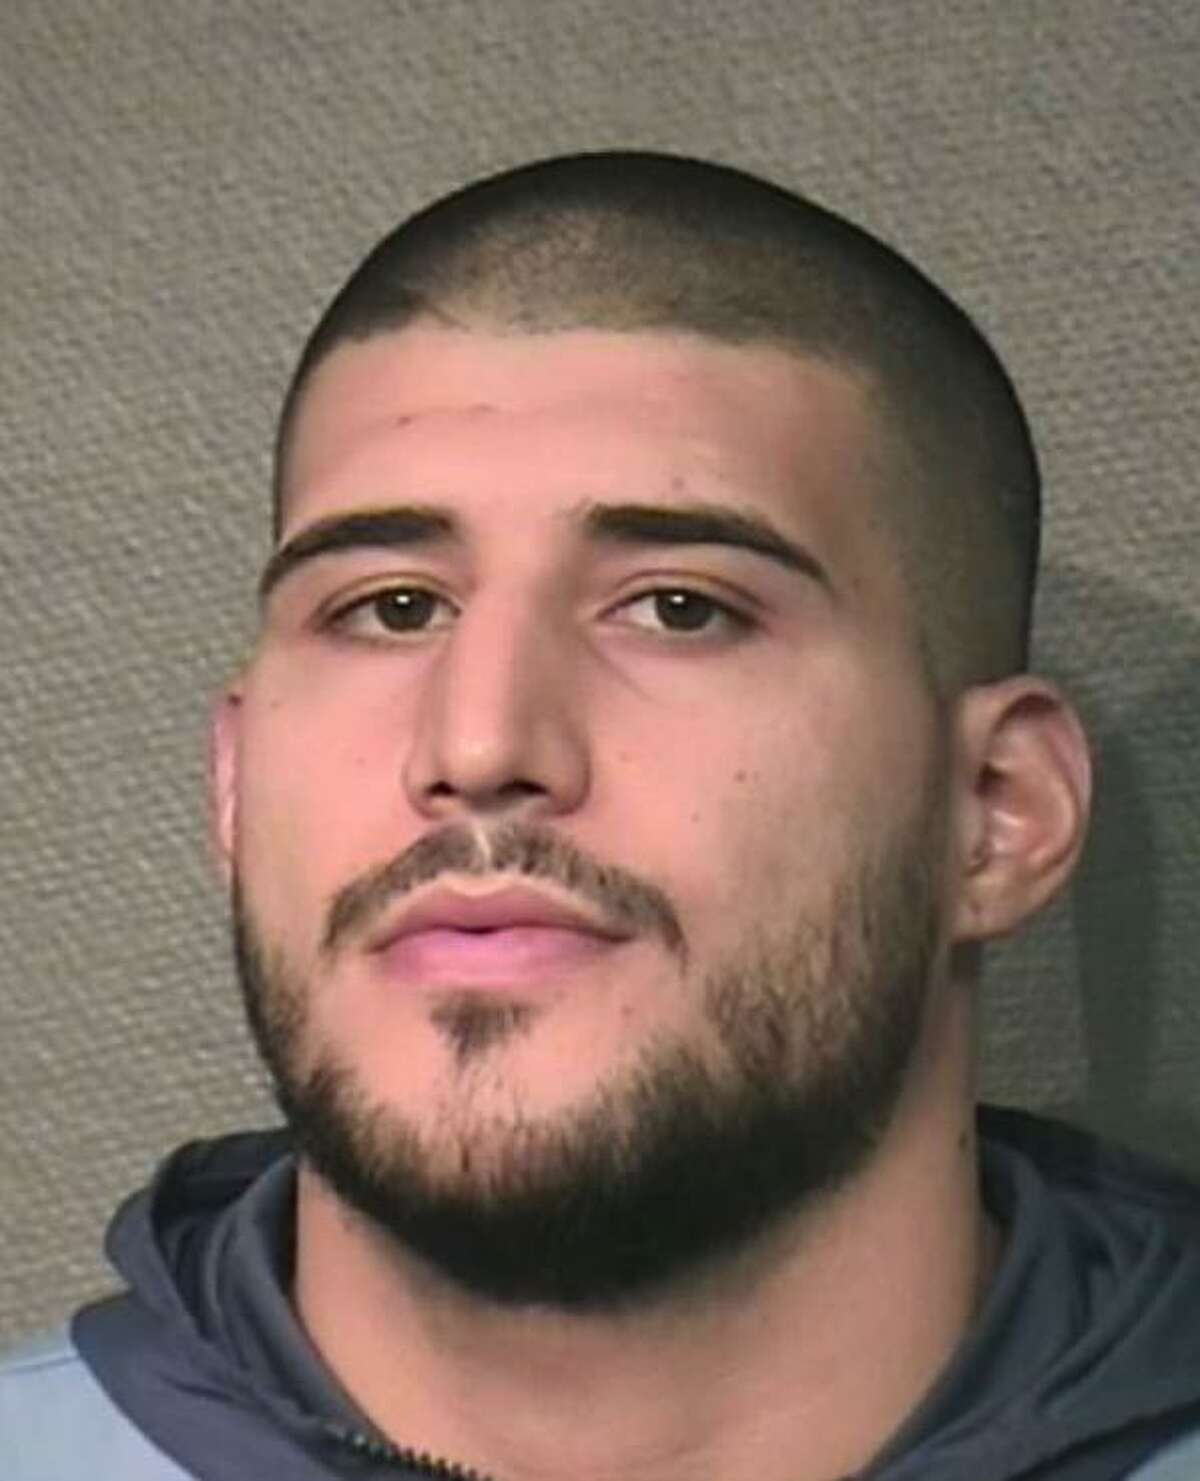 Former Rice University football player Stuart Mouchantaf, 26, of Katy is facing three charges in Houston federal court, allegedly for providing a deadly dosage of the opioid carfentanil to a former teammate Blain Padgett in March 2018.